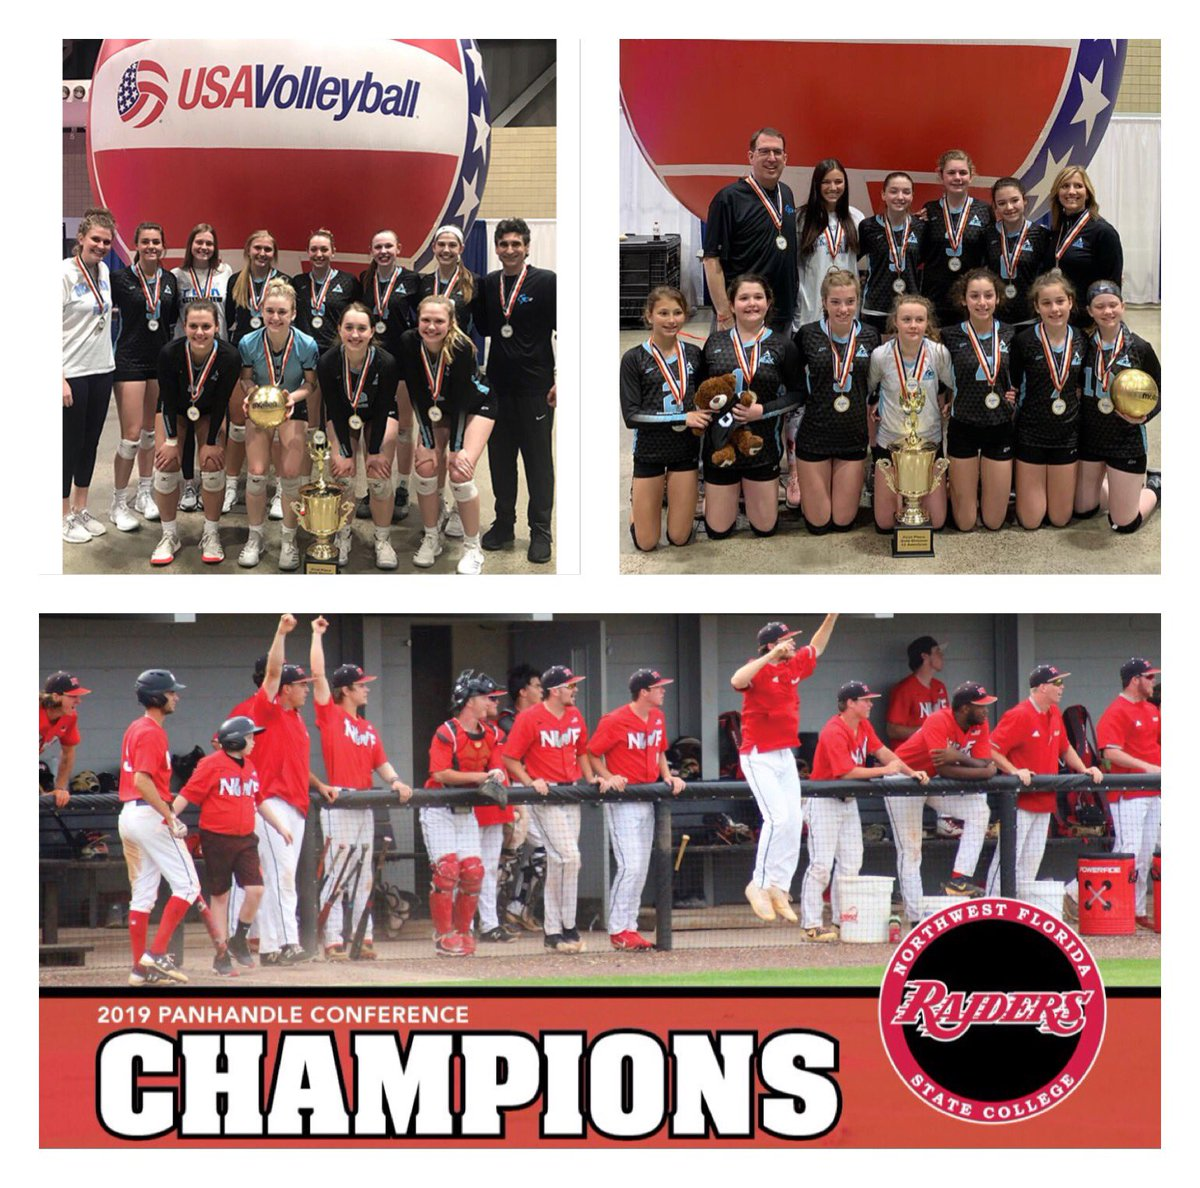 Been a successful couple weeks for the Polcovich household. Teagan's & my team won their championships to get bids to Nationals and Kaden's team just won their Conference today! #sportsfamily #wecompete <br>http://pic.twitter.com/5bI3b1R68e